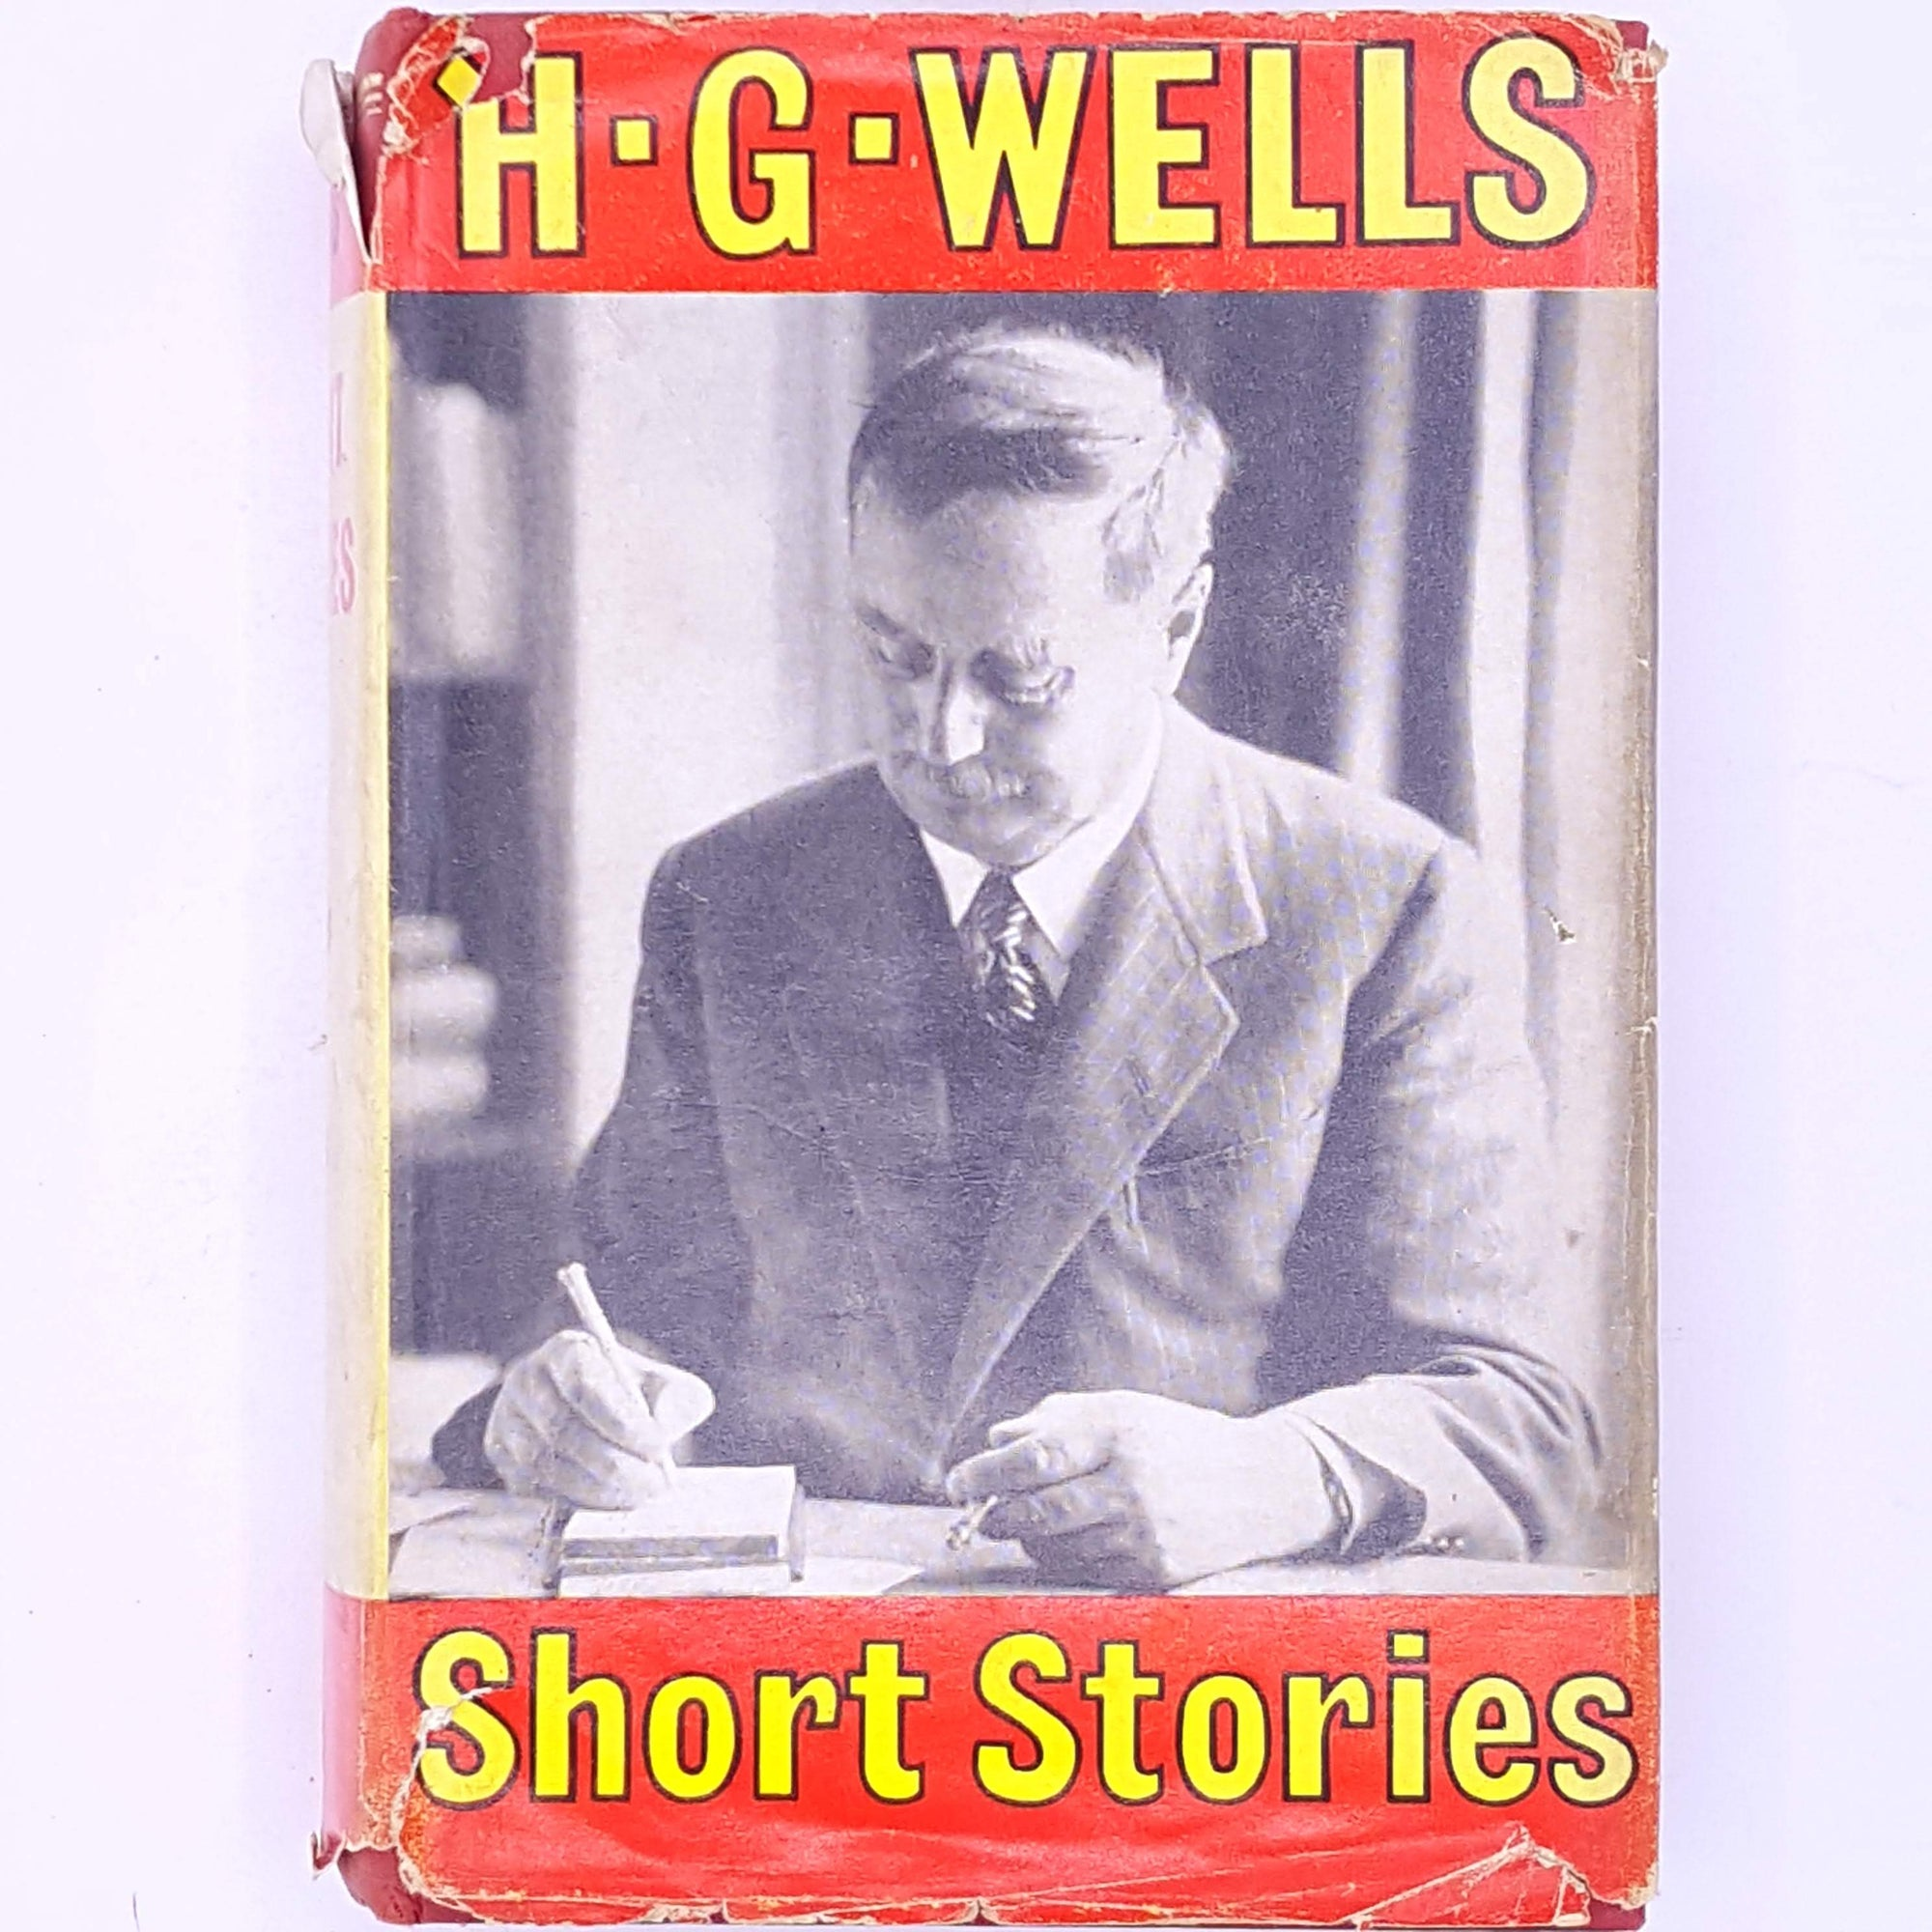 H.G. Wells, Short Stories 1960